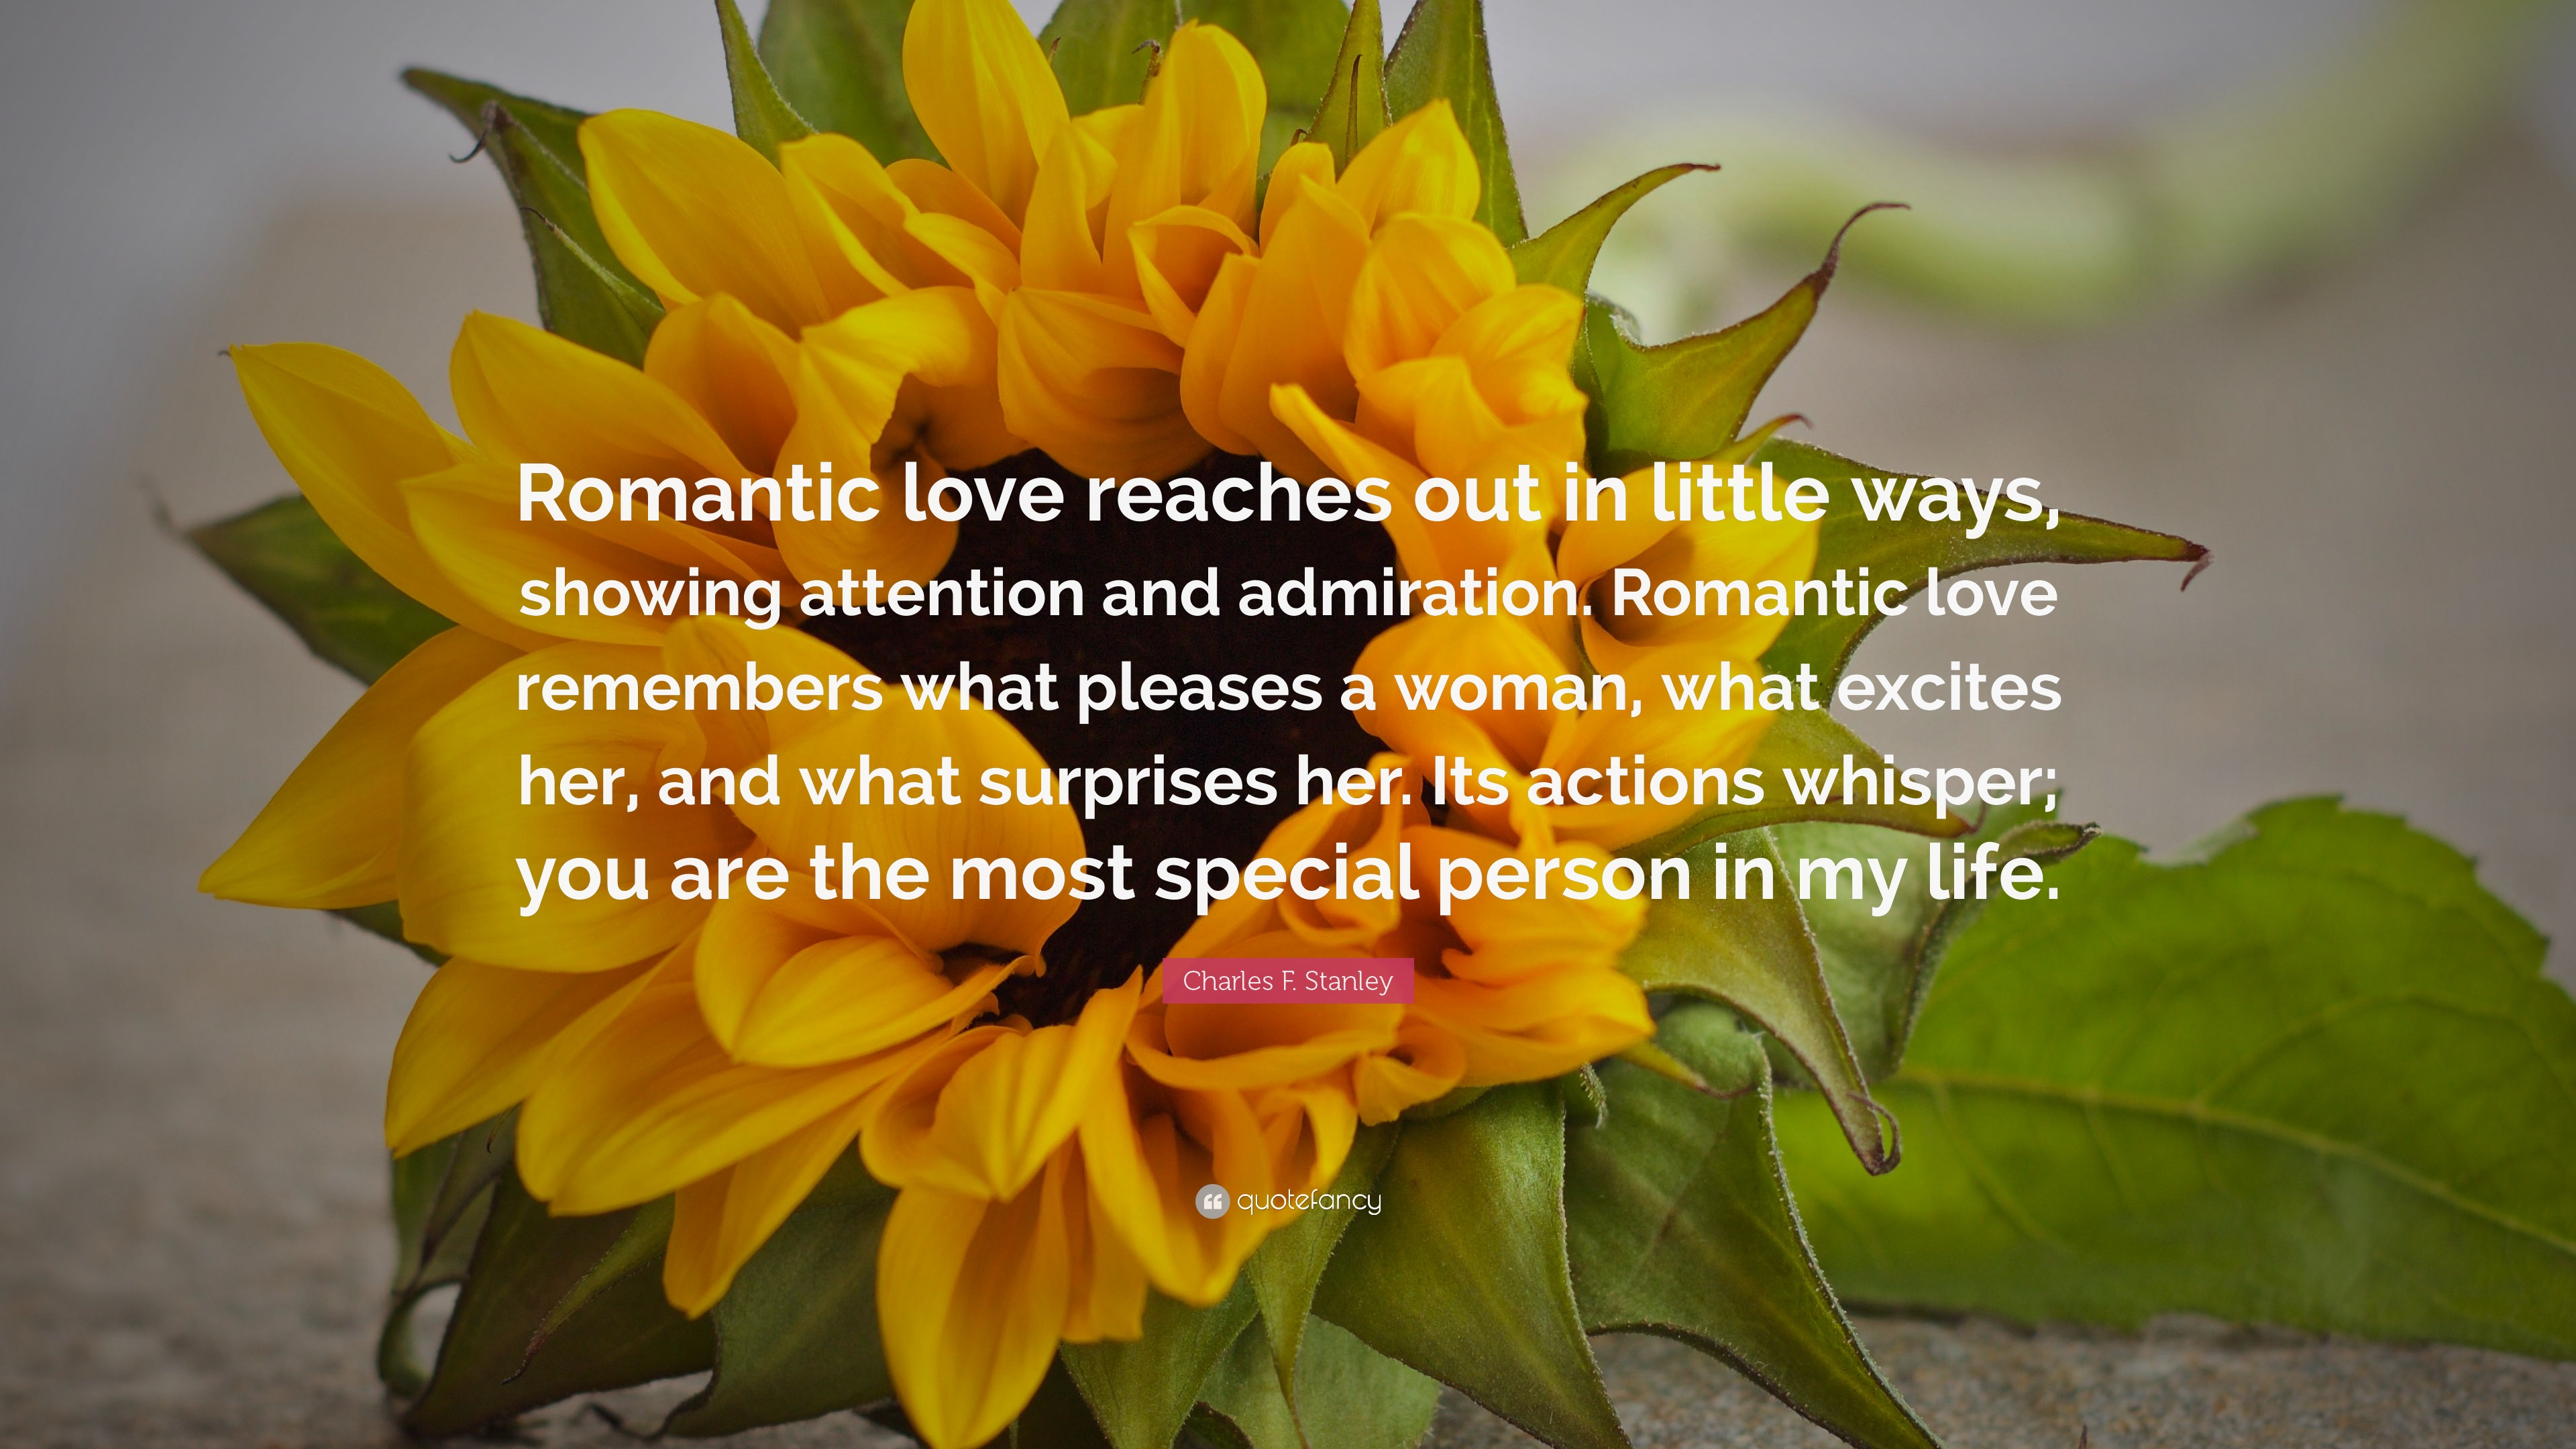 Charles F Stanley Quote Romantic Love Reaches Out In Little Ways